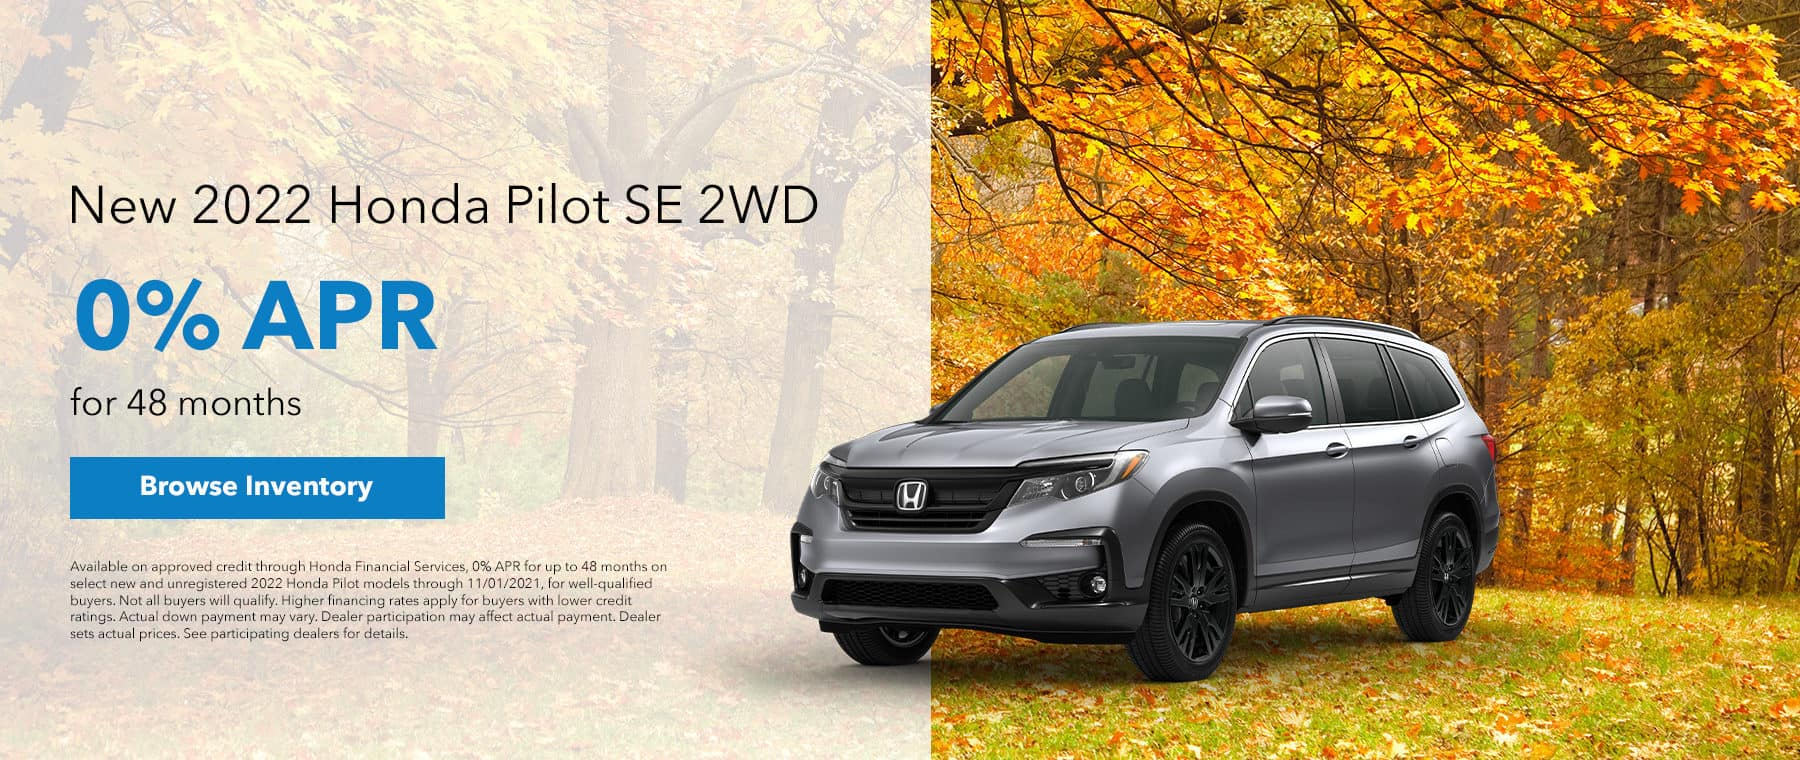 New 2022 Honda Pilot SE 2WD with 0% APR for 48 months